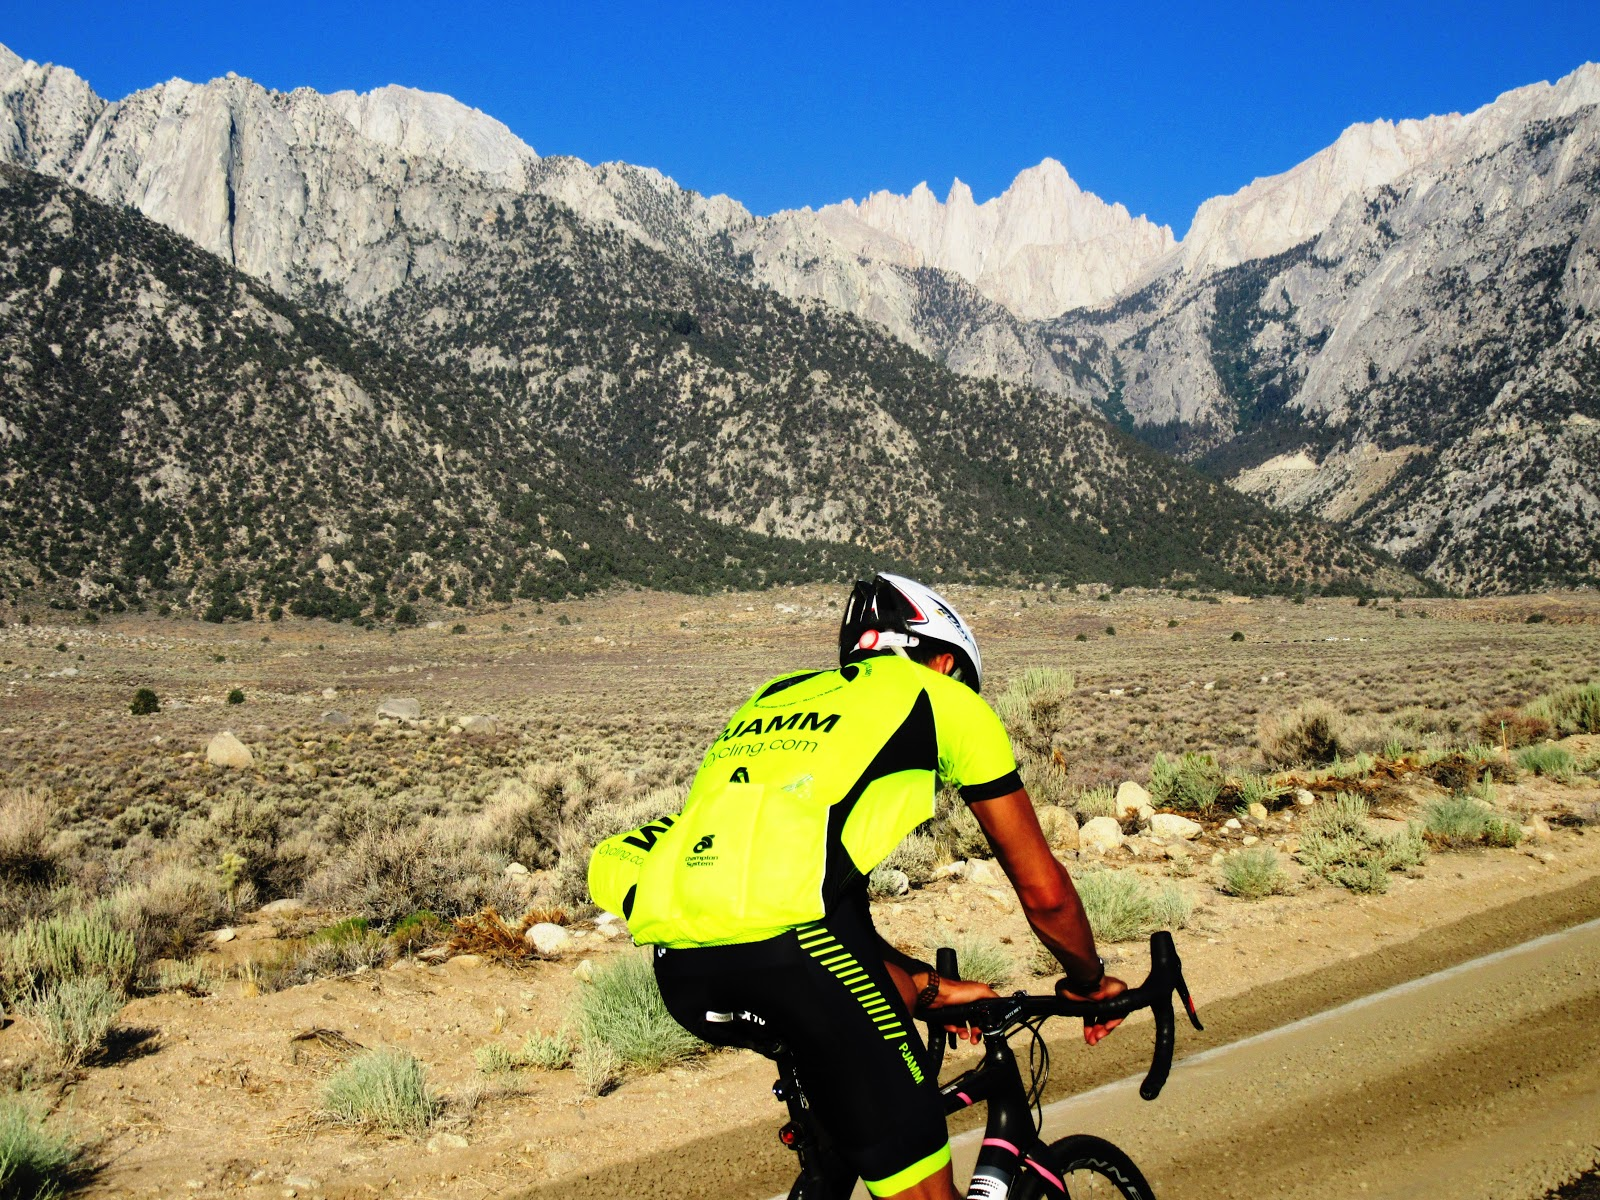 Cycling and climbing by bike  Owens Valley - pjamm cyclist on bike with mountains and whitney peak in background